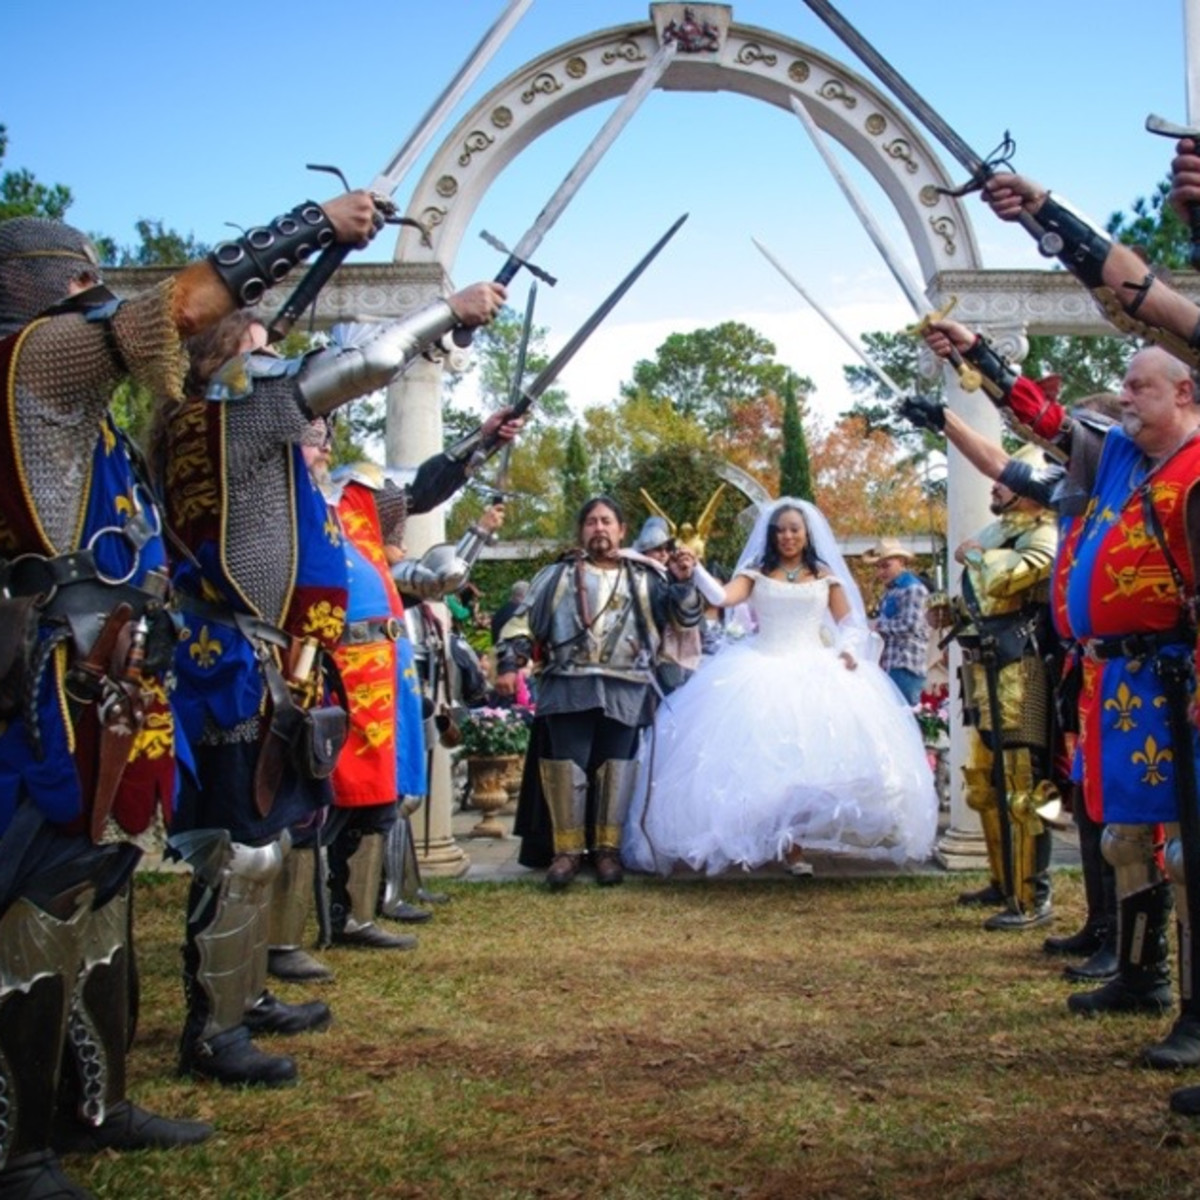 Texas Renaissance Festival wedding